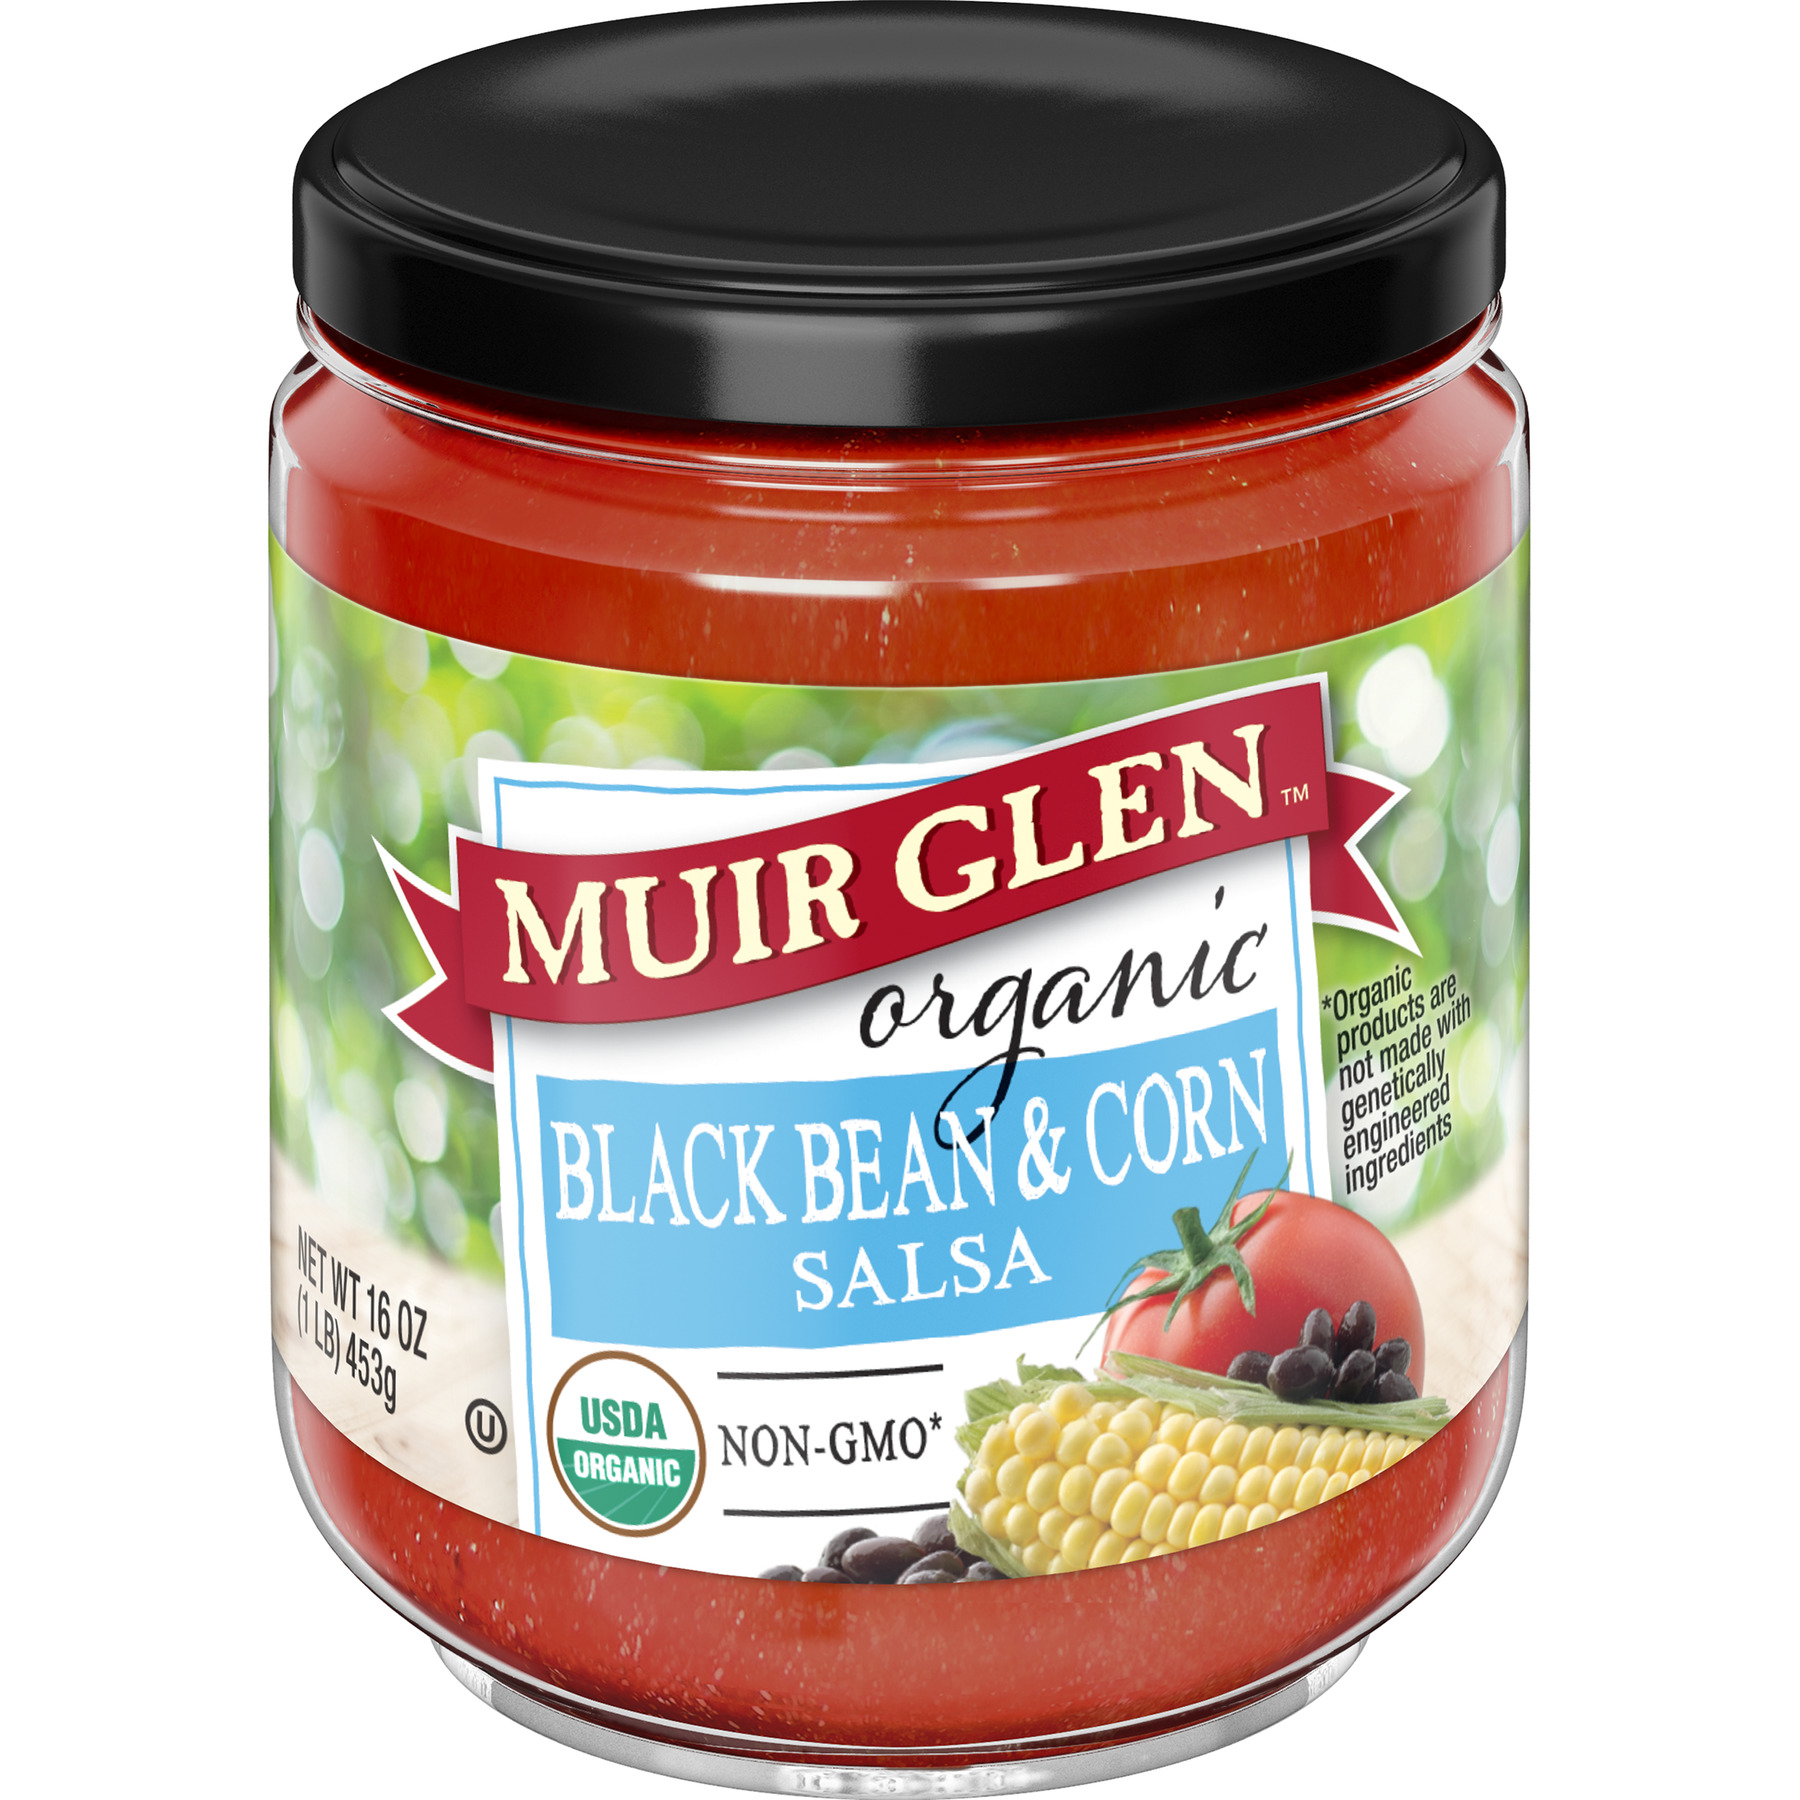 Muir Glen Organic Medium Black Bean and Corn Salsa, 16 oz